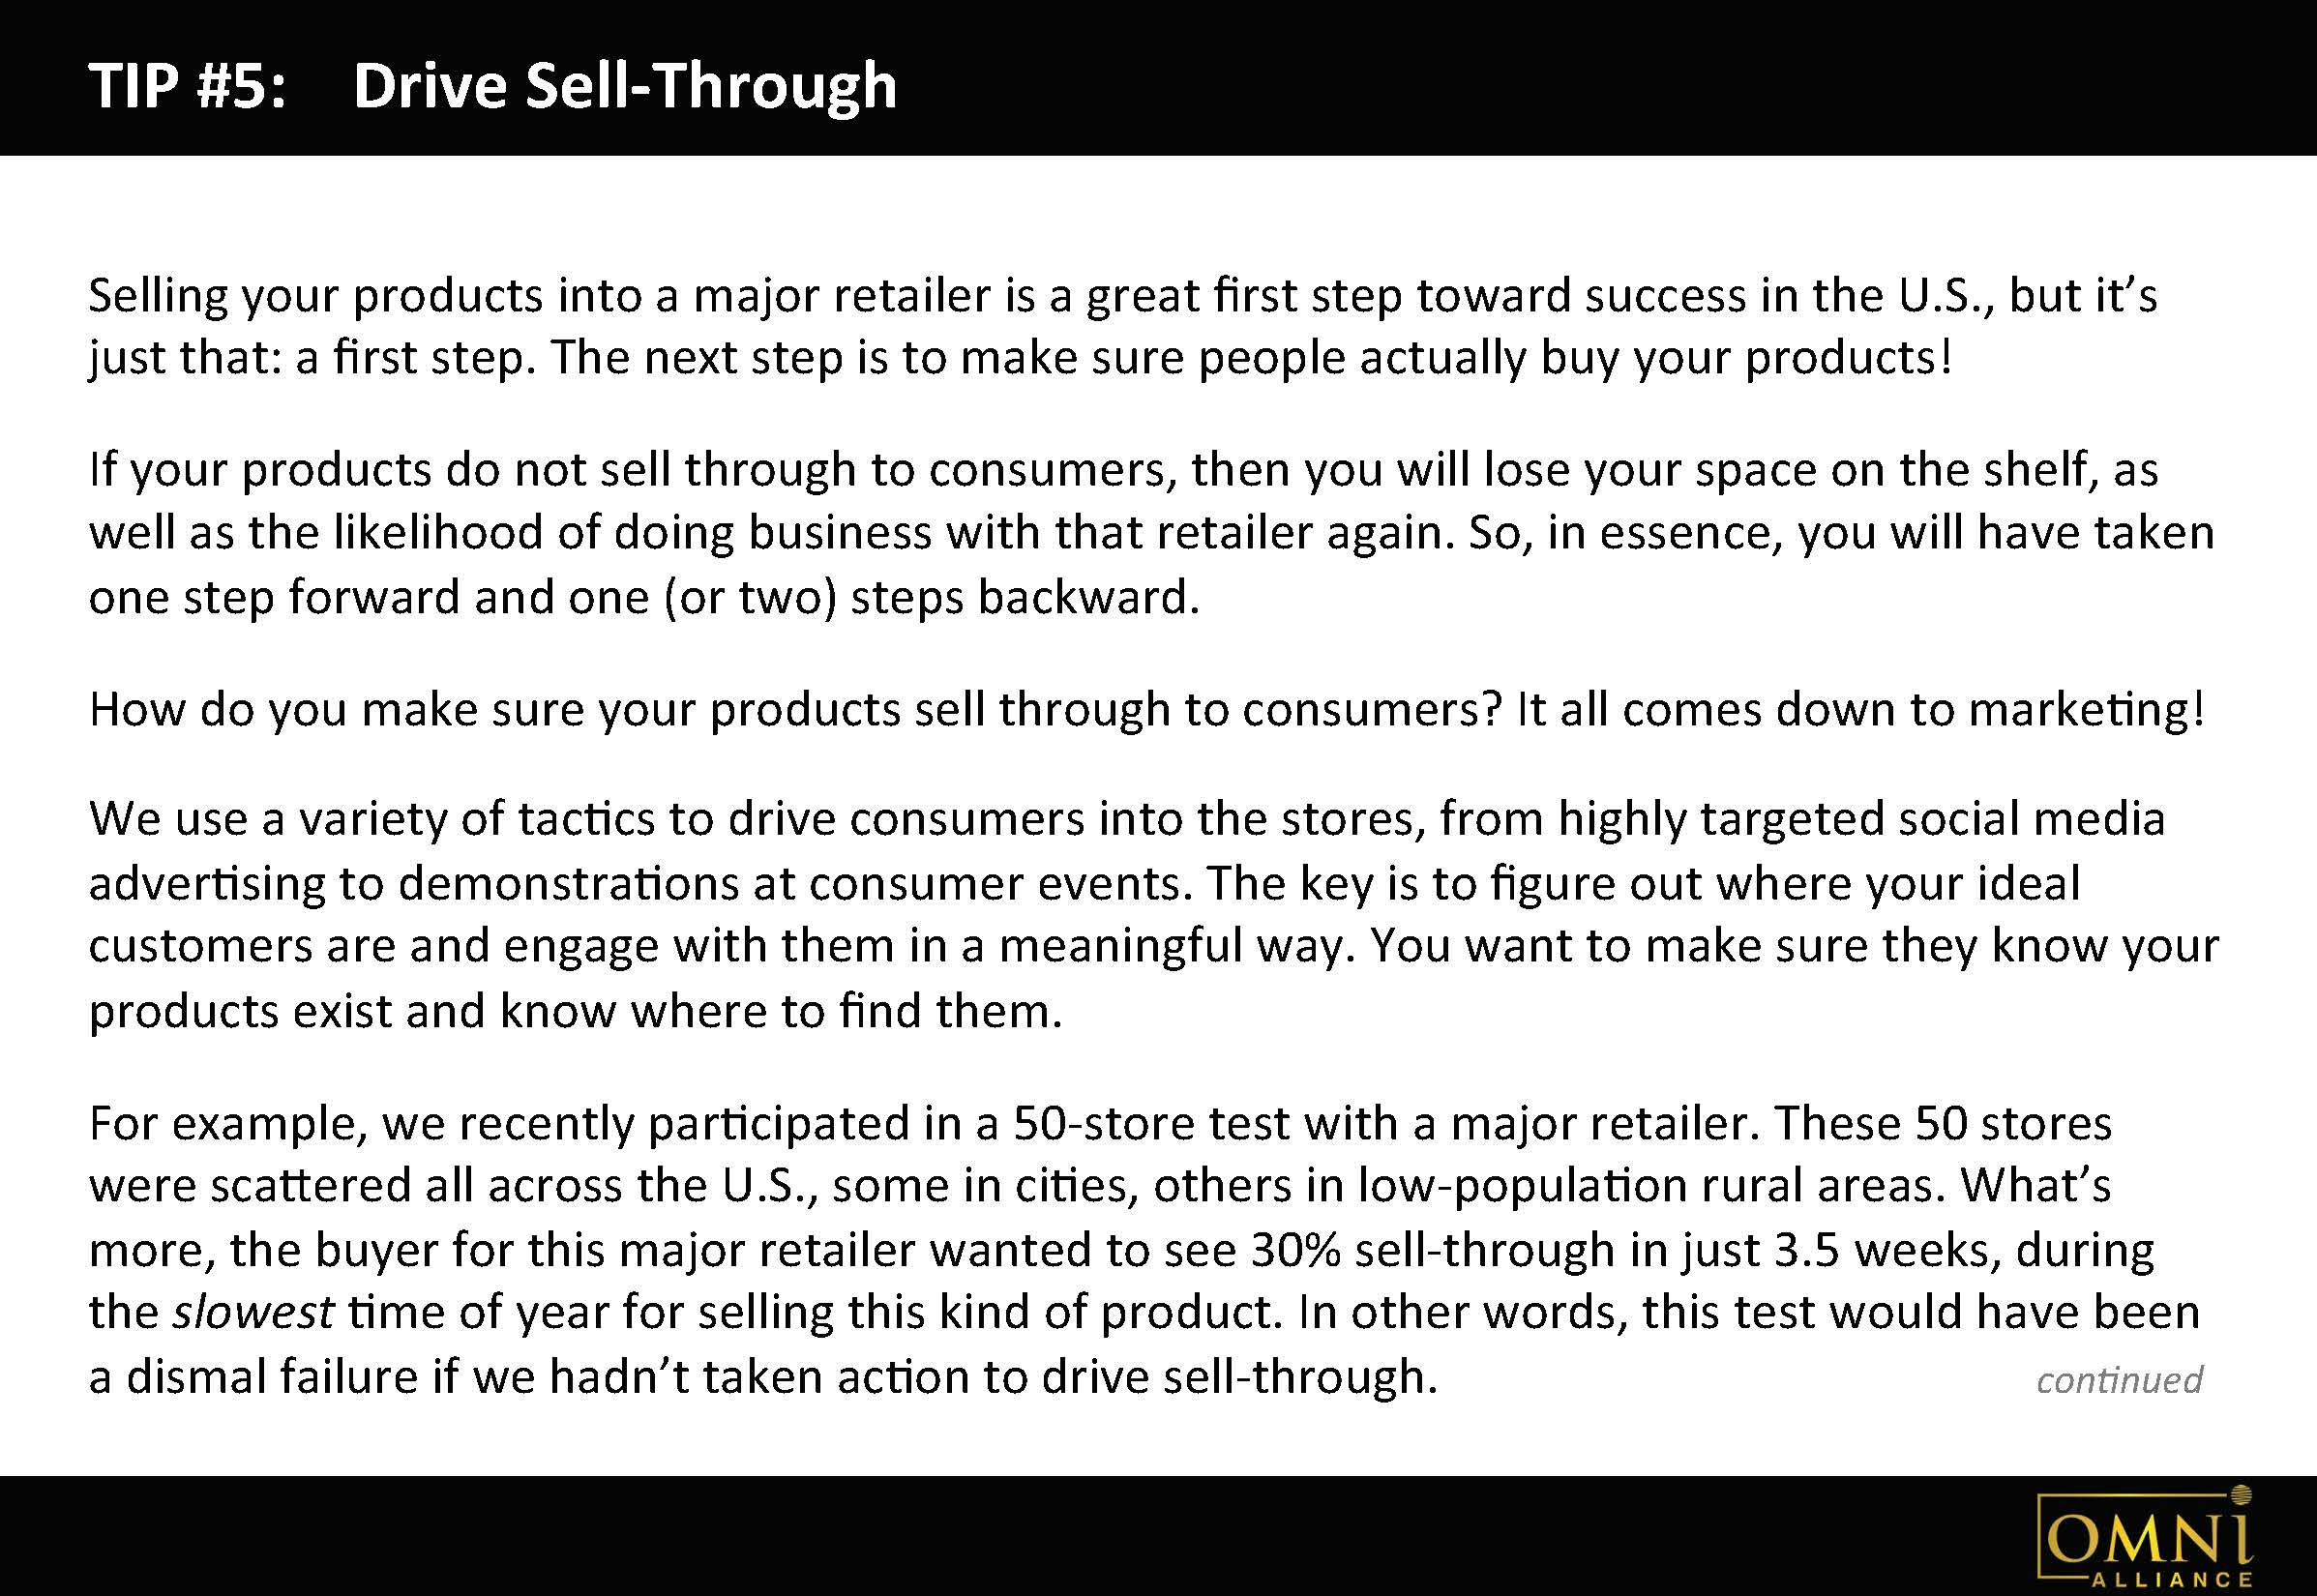 Pages from Omni_Alliance_5_Tips_for_US_Success-Page7.jpg